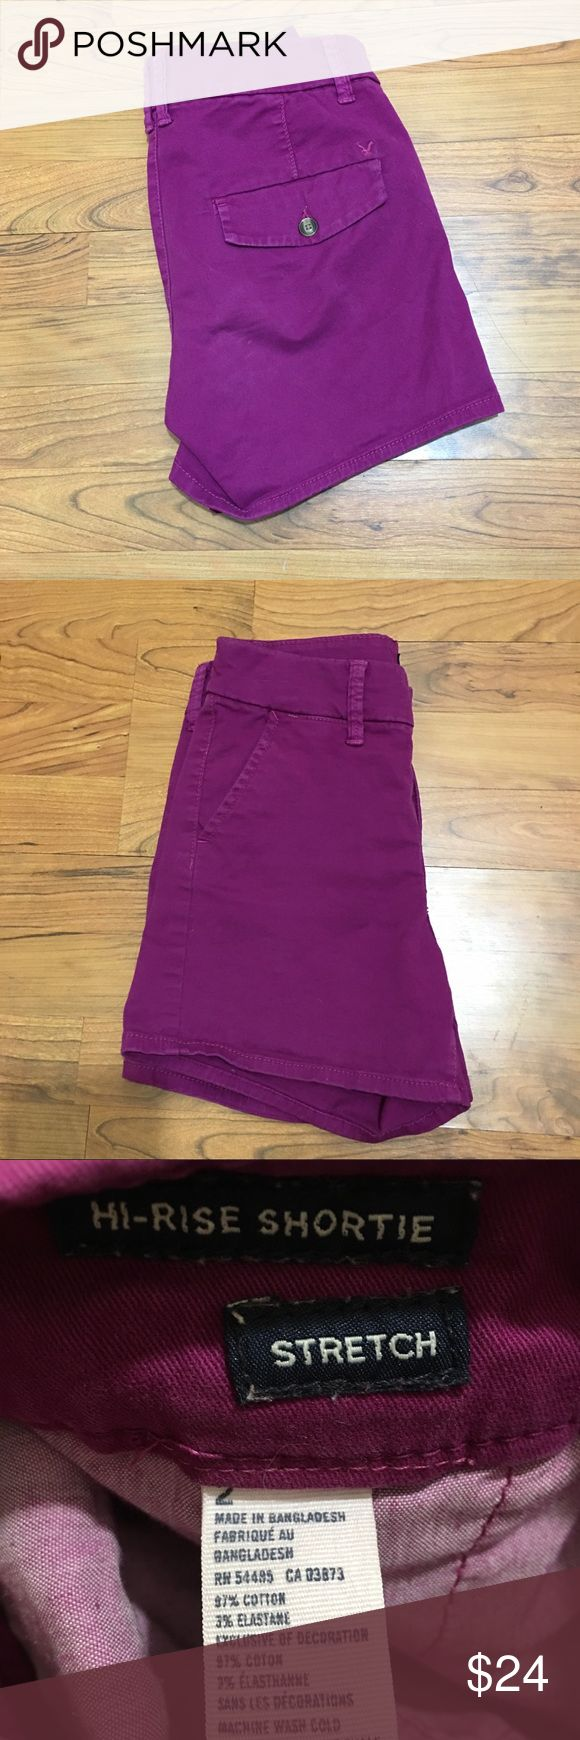 American Eagle High Rise Shorts Size 2 American Eagle High Rise Shorts  Size 2  Purple/Pink - Fuchsia Color   Preowned, in great condition, no rips or stains. Perfect for a pop of color for your festival style. American Eagle Outfitters Shorts